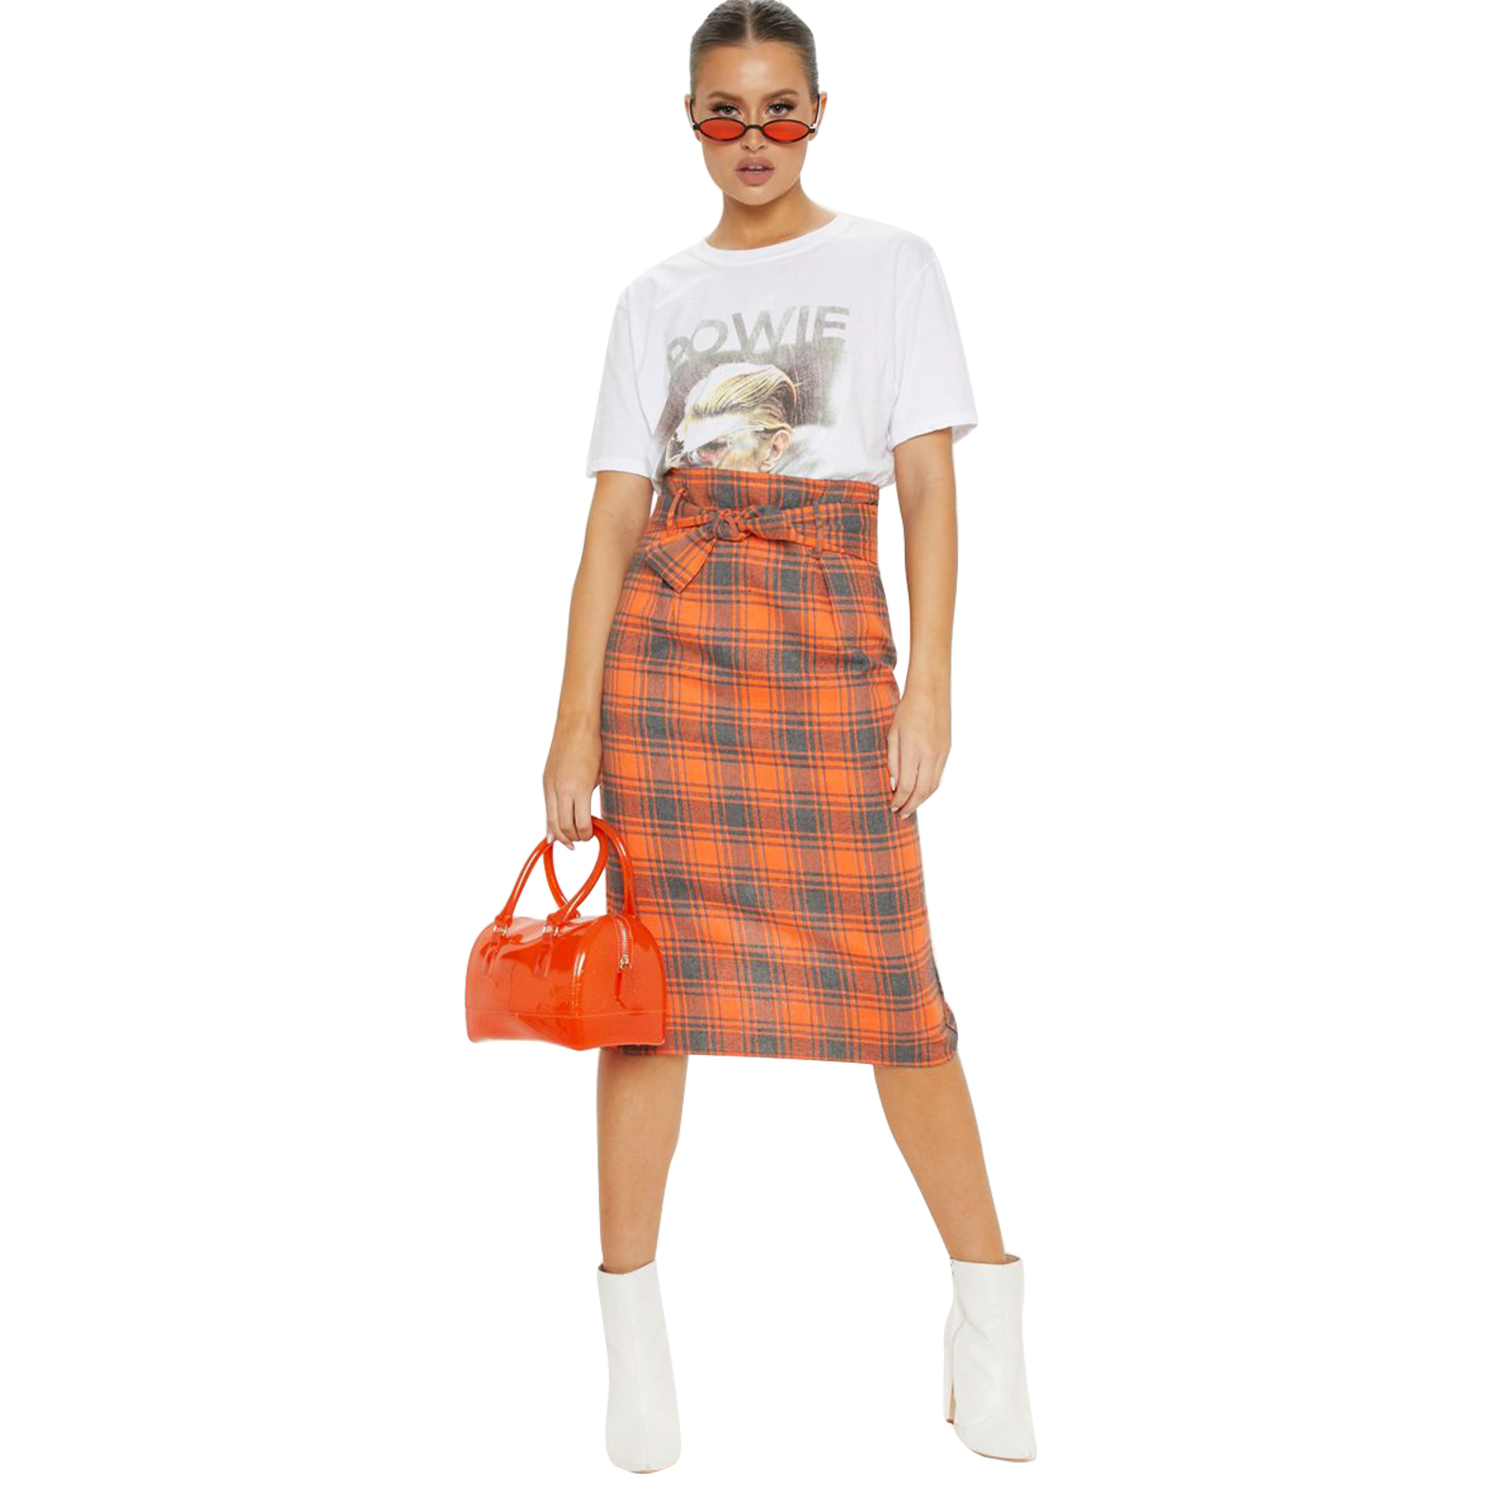 Fashionable New Spring Orange Plaid Skirts Womens Knee Length Split Skirt Girl Lady Natural Waist Plaid Skirt With Belt 81835